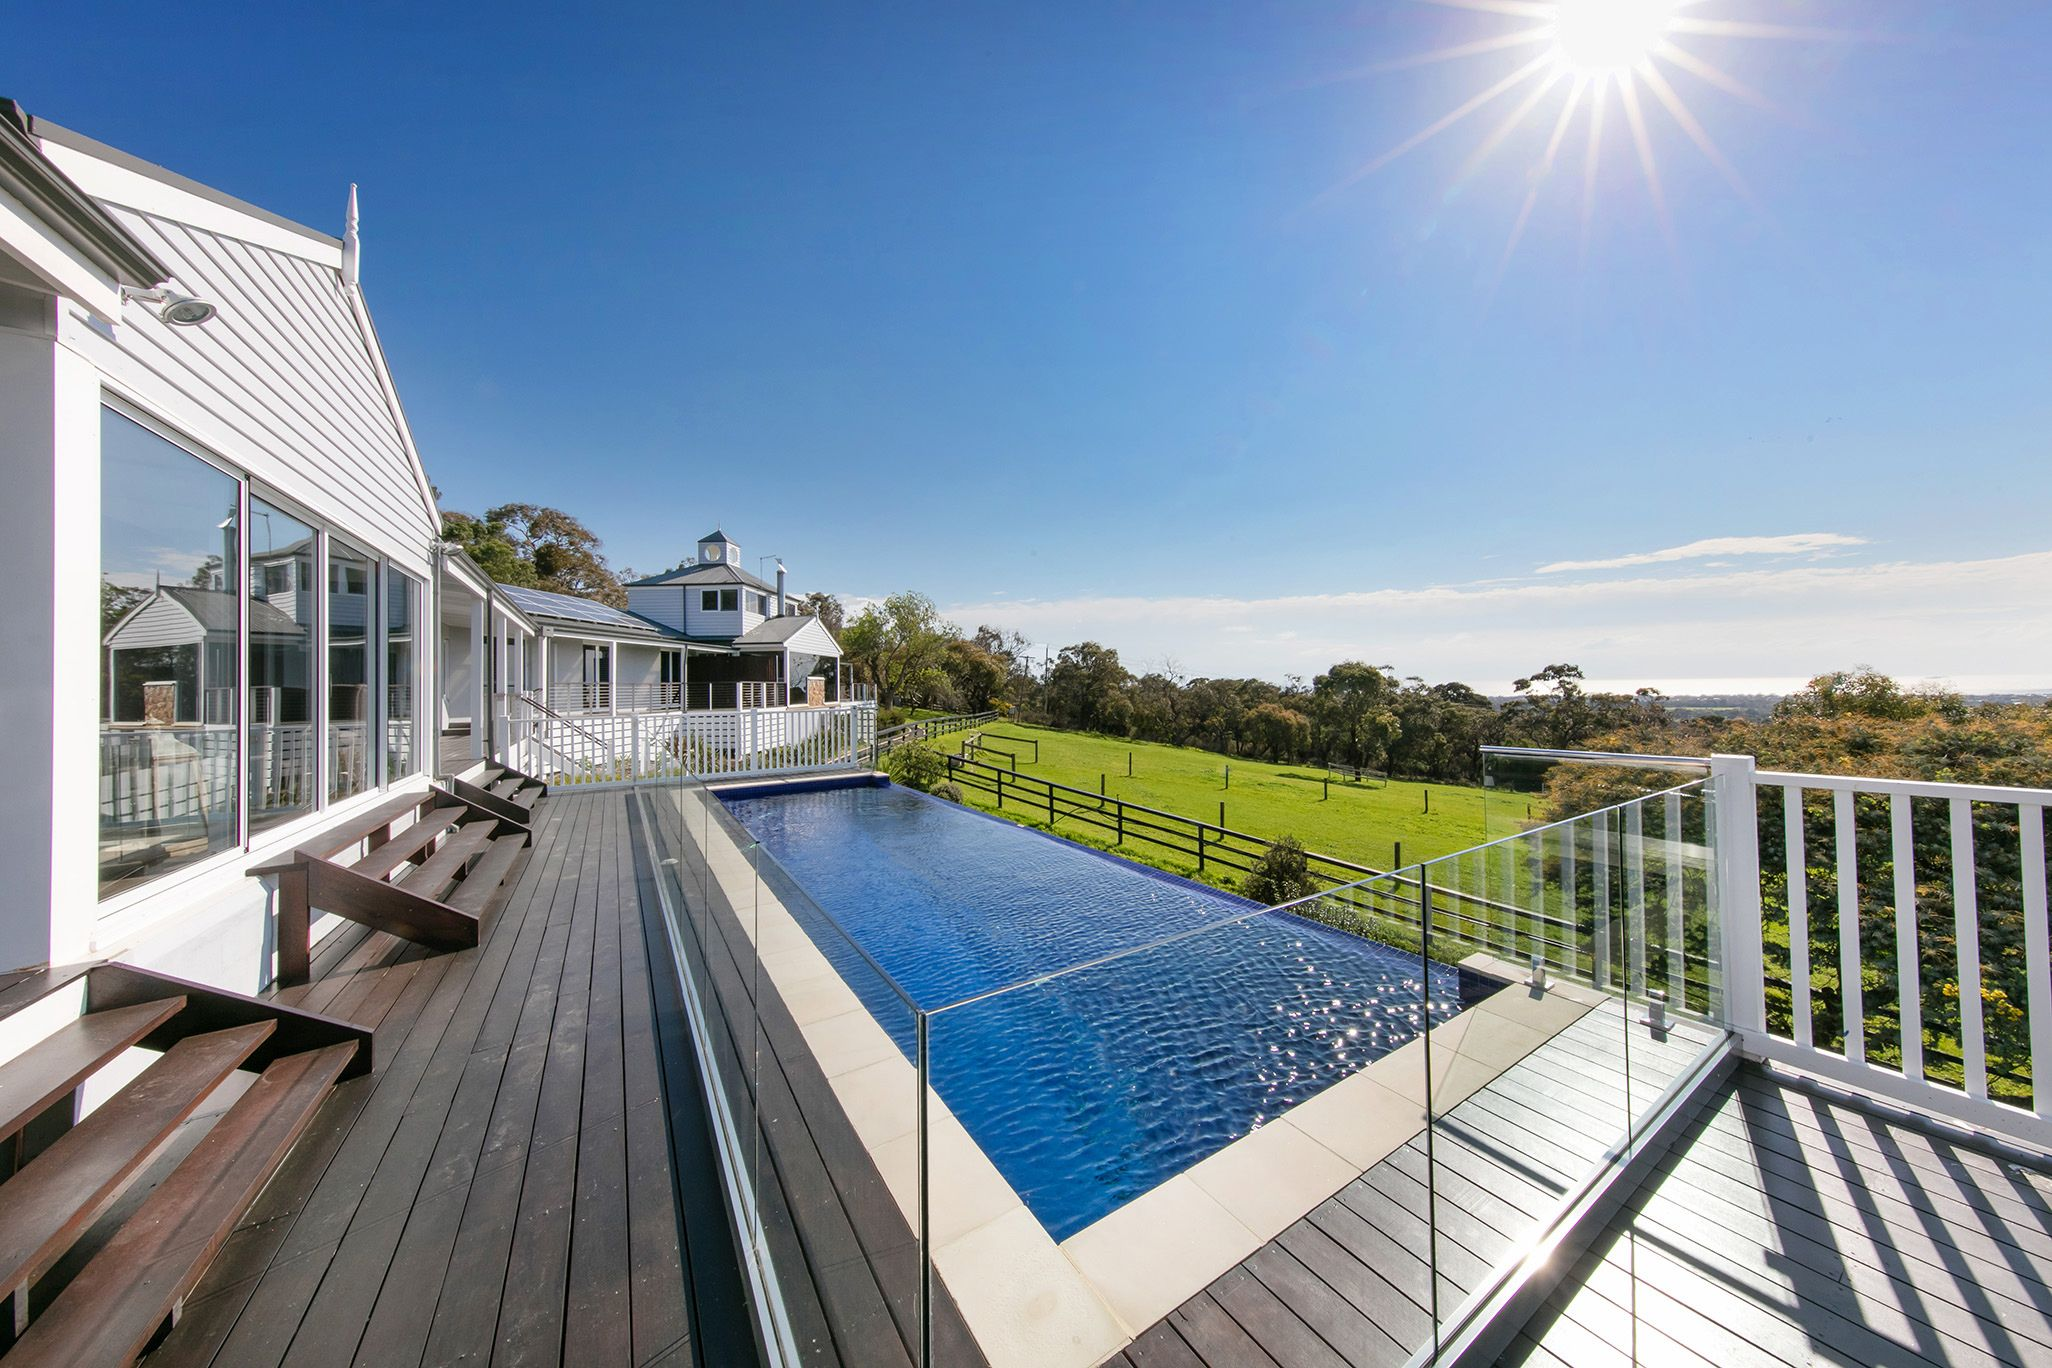 South Hampton Luxury Retreat, Mornington Peninsula, Victoria